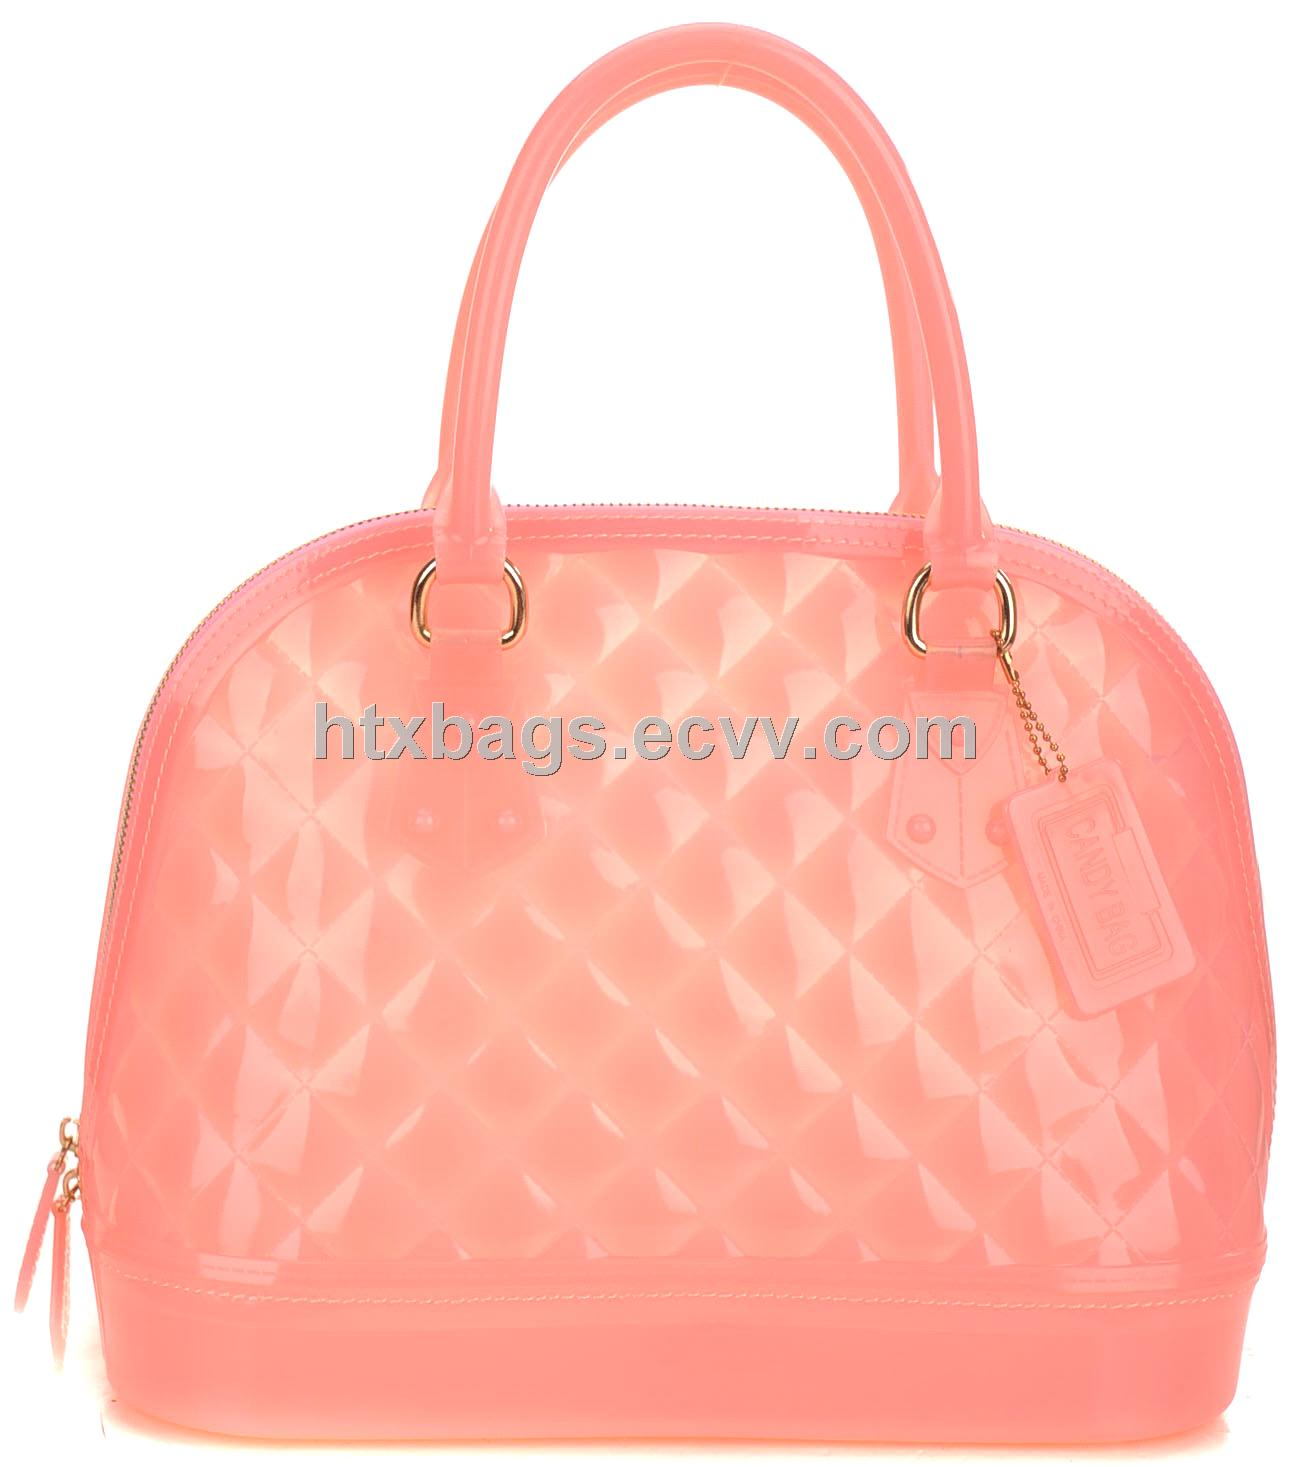 Trendy pvc bag made in China(YX006)